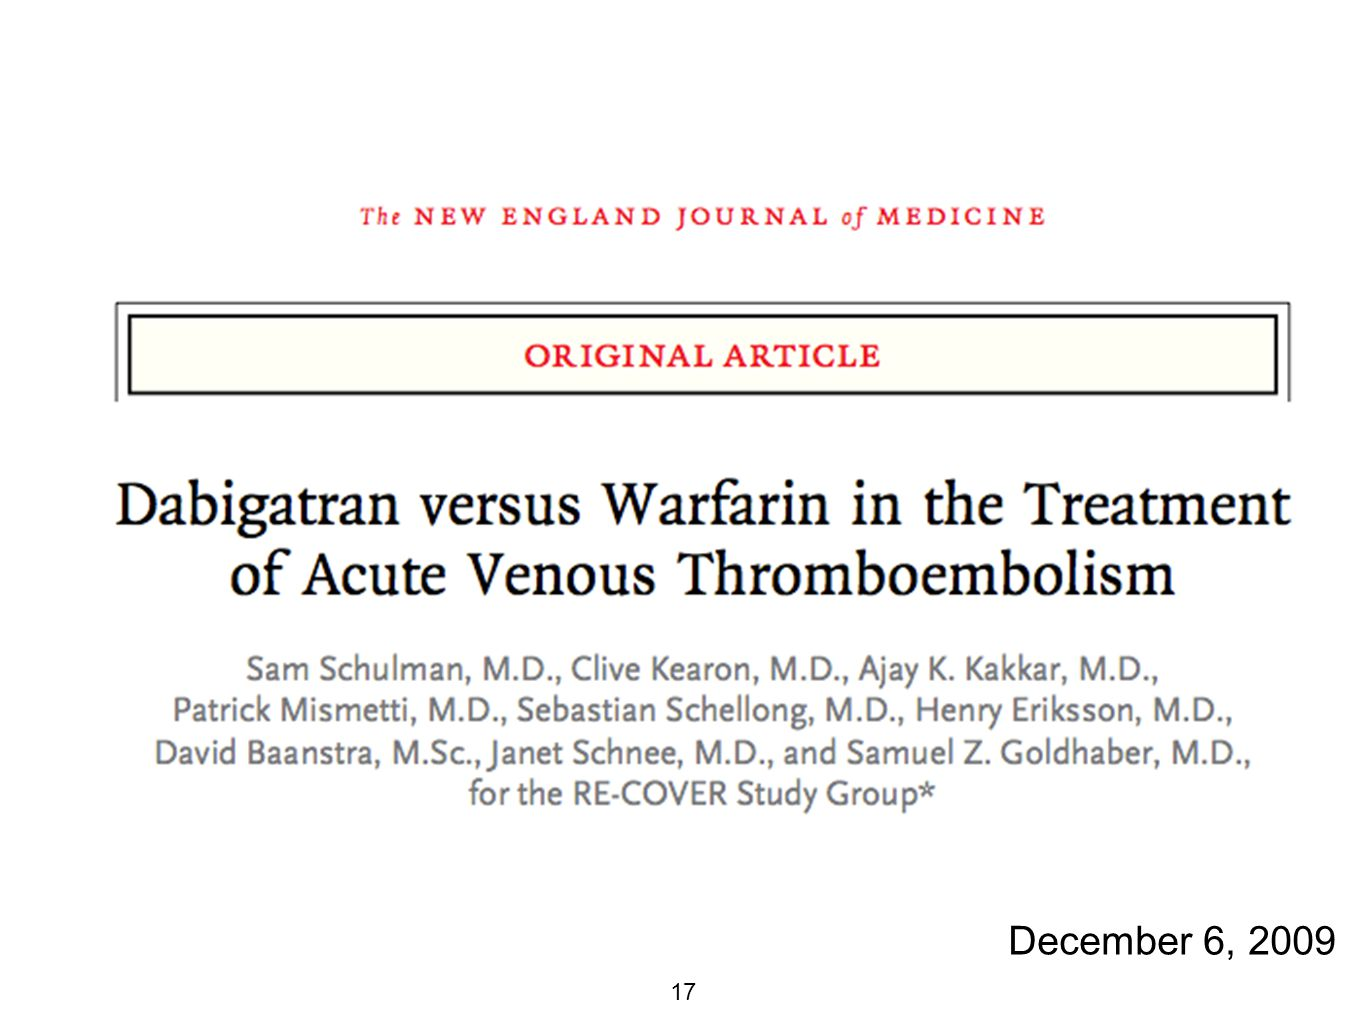 18 RE-COVER N = 2564, Follow-up 6 months, double-blind Inclusion: DVT or PE with planned tx for 6 months Exclusion: Symptoms longer than 6 months, PE with HD instability or use of TPA, indication for warfarin, unstable heart disease, high risk of bleeding, transaminases, life expectancy < 6 months, CrCl < 30, pregnancy Randomized to 150 mg dabigatran BID vs warfarin Primary outcome: symptomatic VTE or death 2/2 VTE